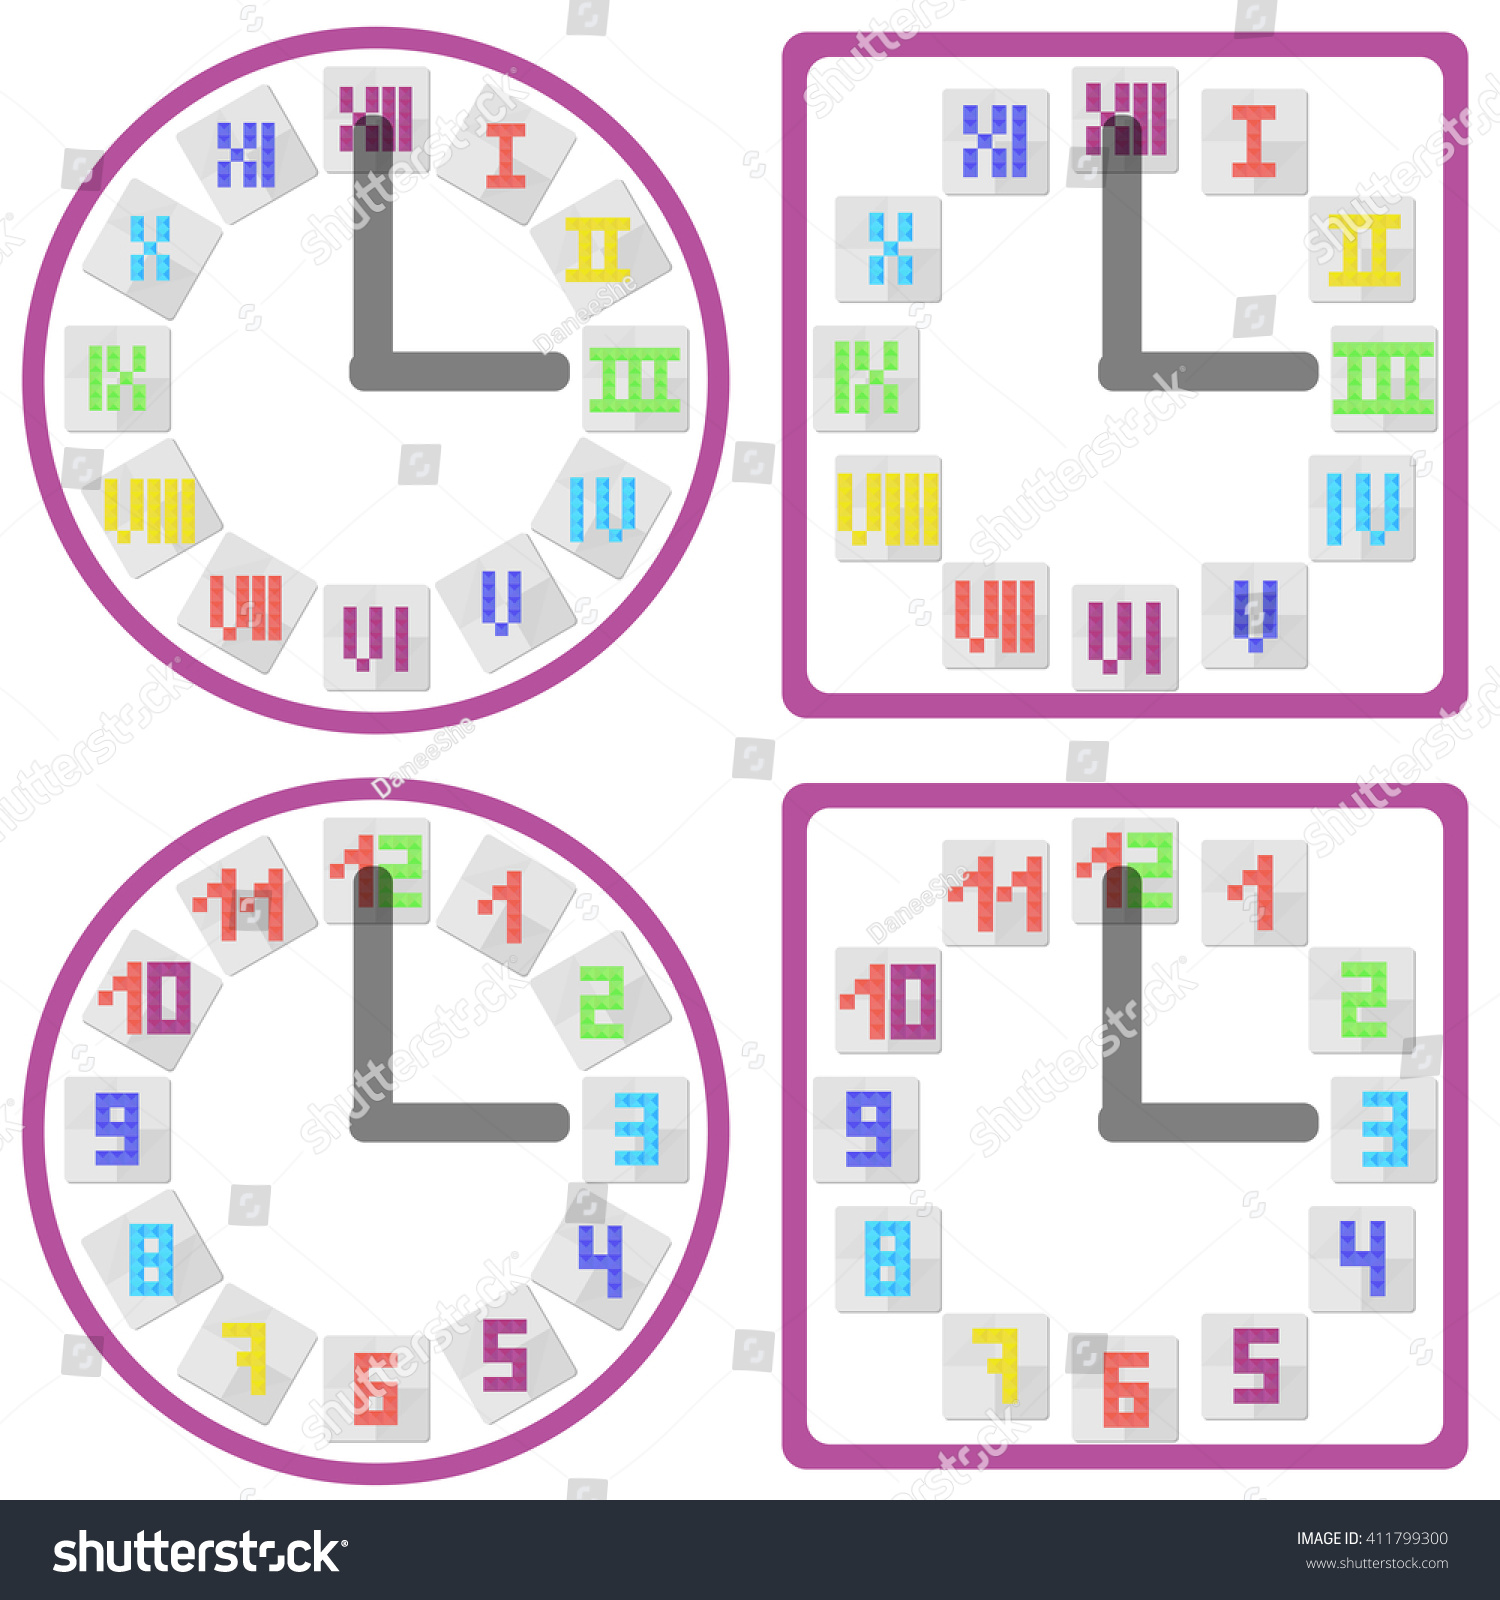 Periodic table with roman numerals images periodic table images clipart periodic table roman clock computer connector symbols set clock icons arabic roman tile stock vector gamestrikefo Gallery